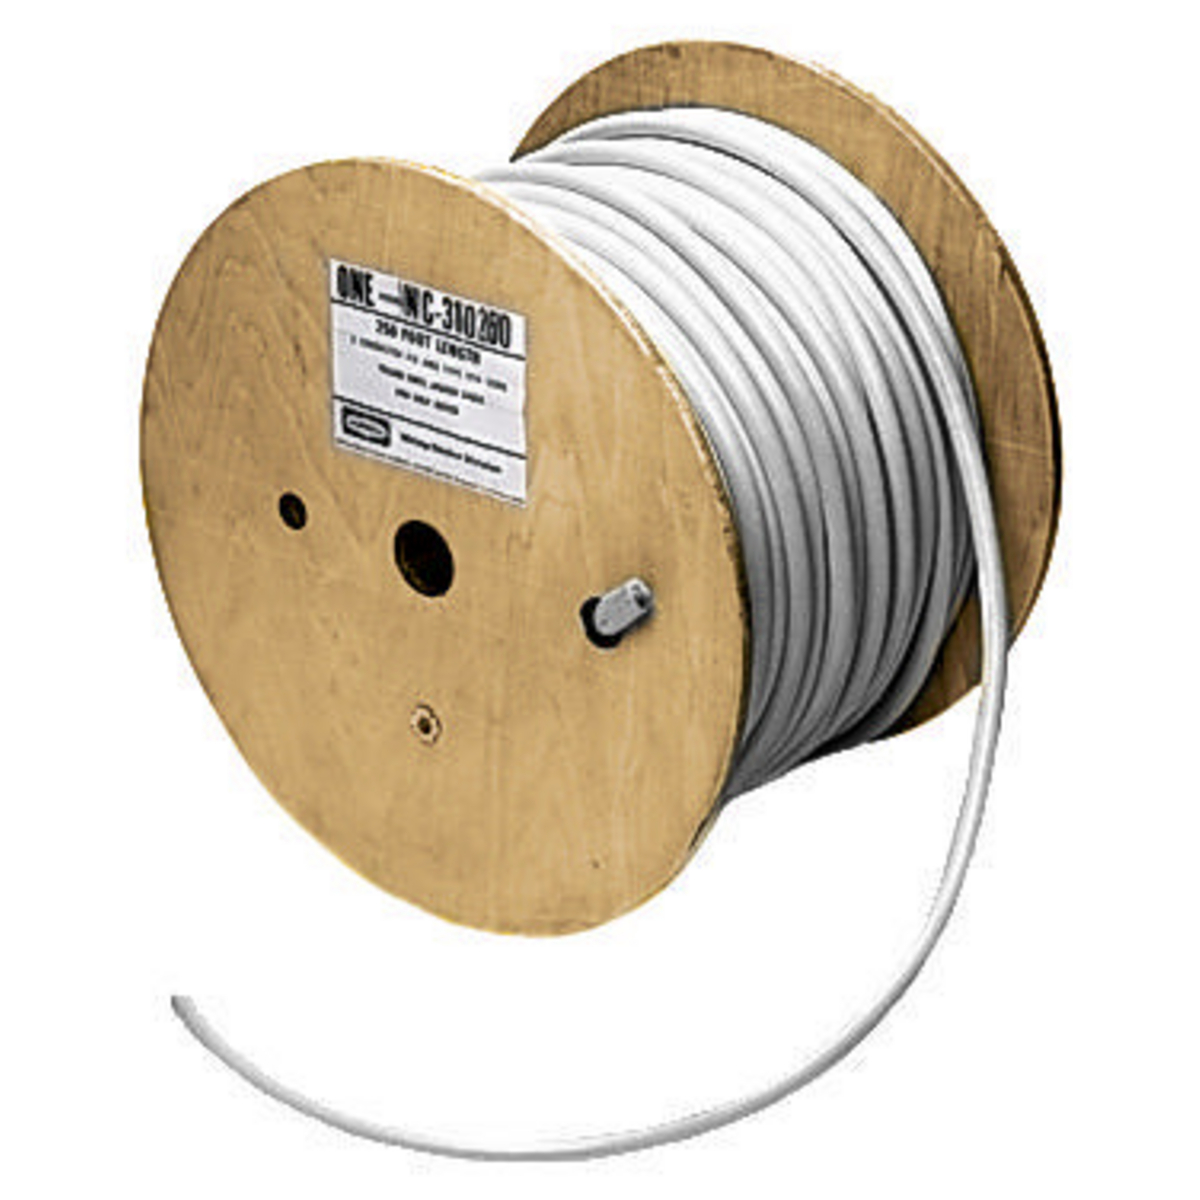 Wiring Device Kellems Hubwc310280 Marine Power Cable 10 3 Sto Electrical 280ft Wh Wc310280